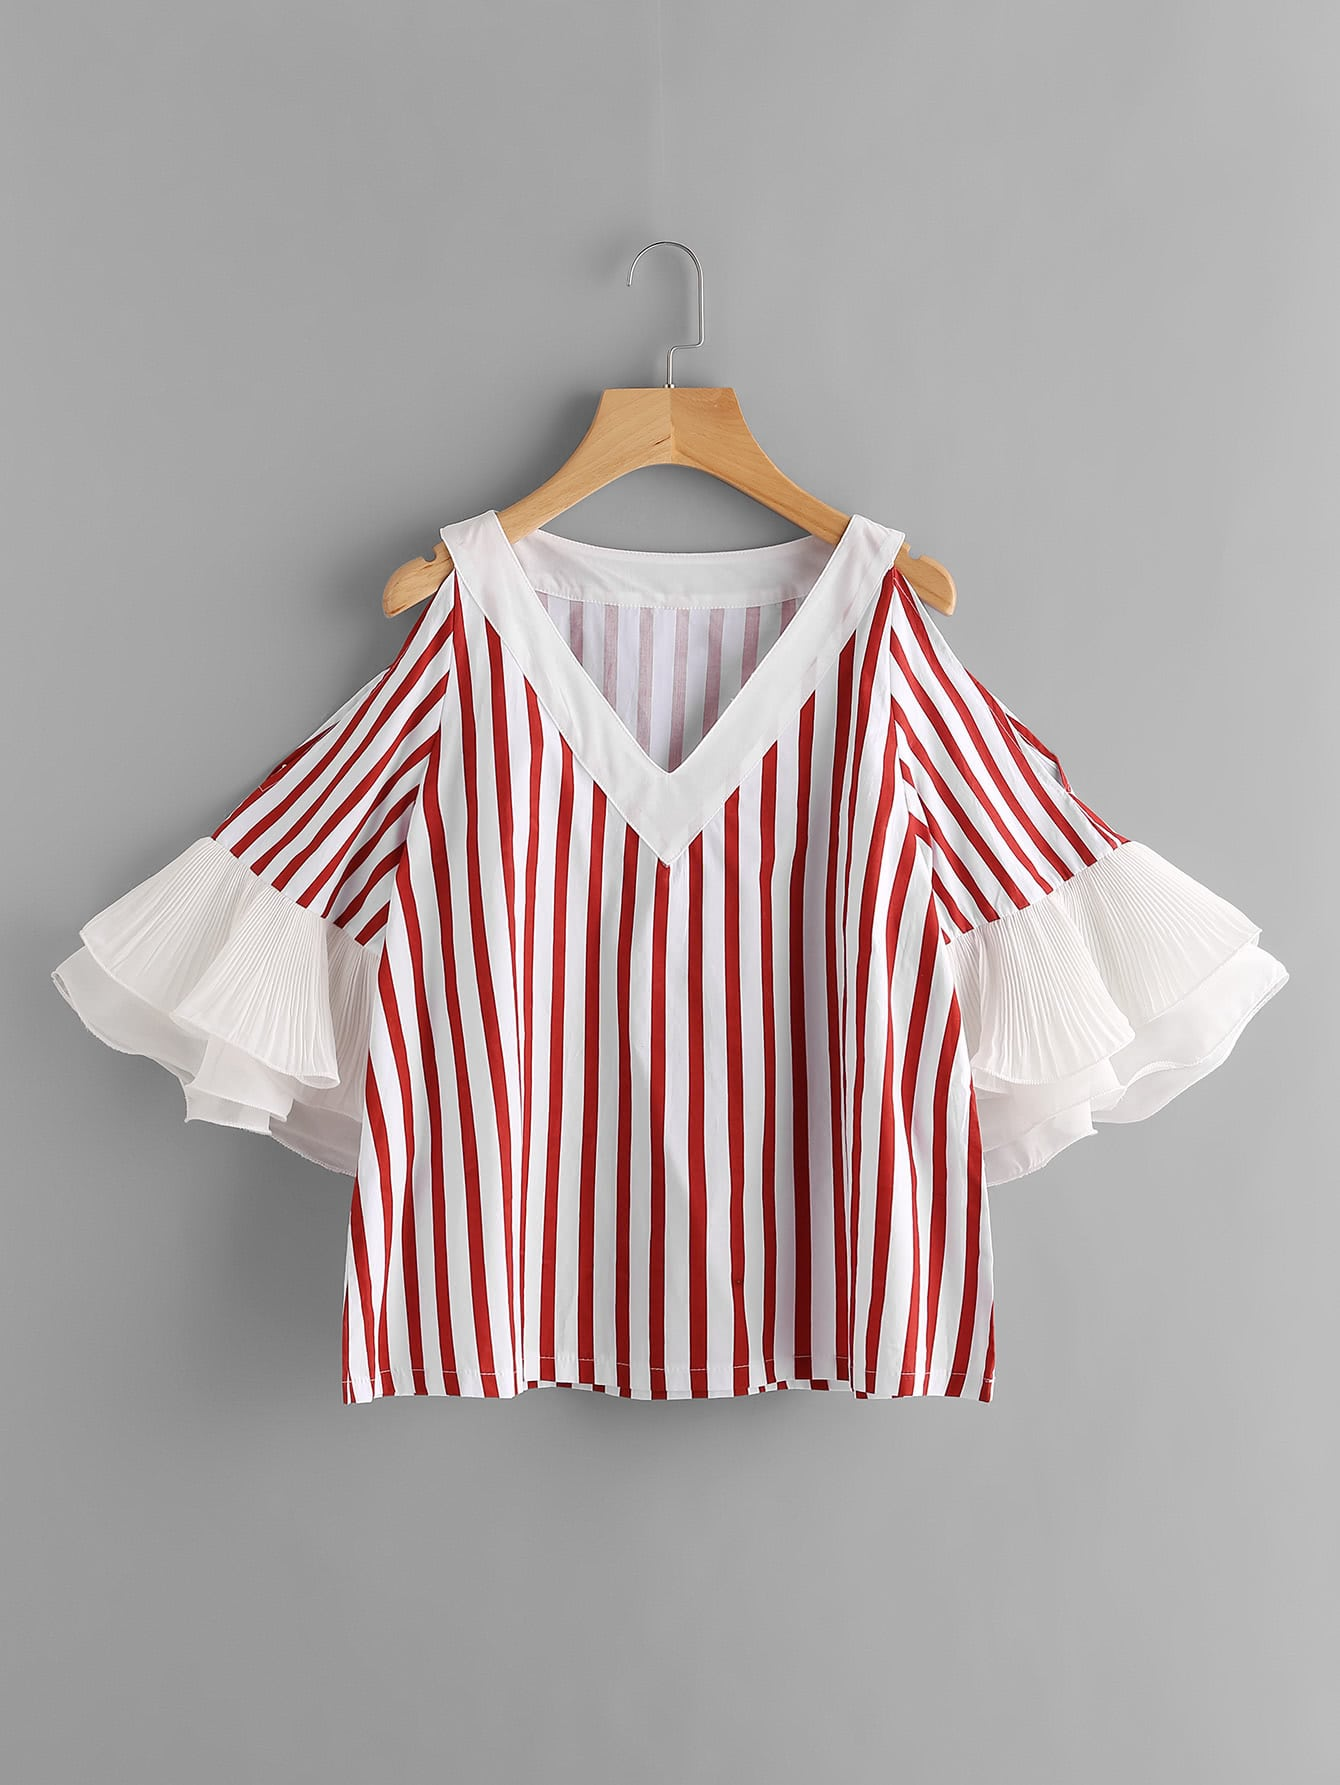 Contrast Tiered Flute Sleeve Vertical Striped Blouse blouse170606008